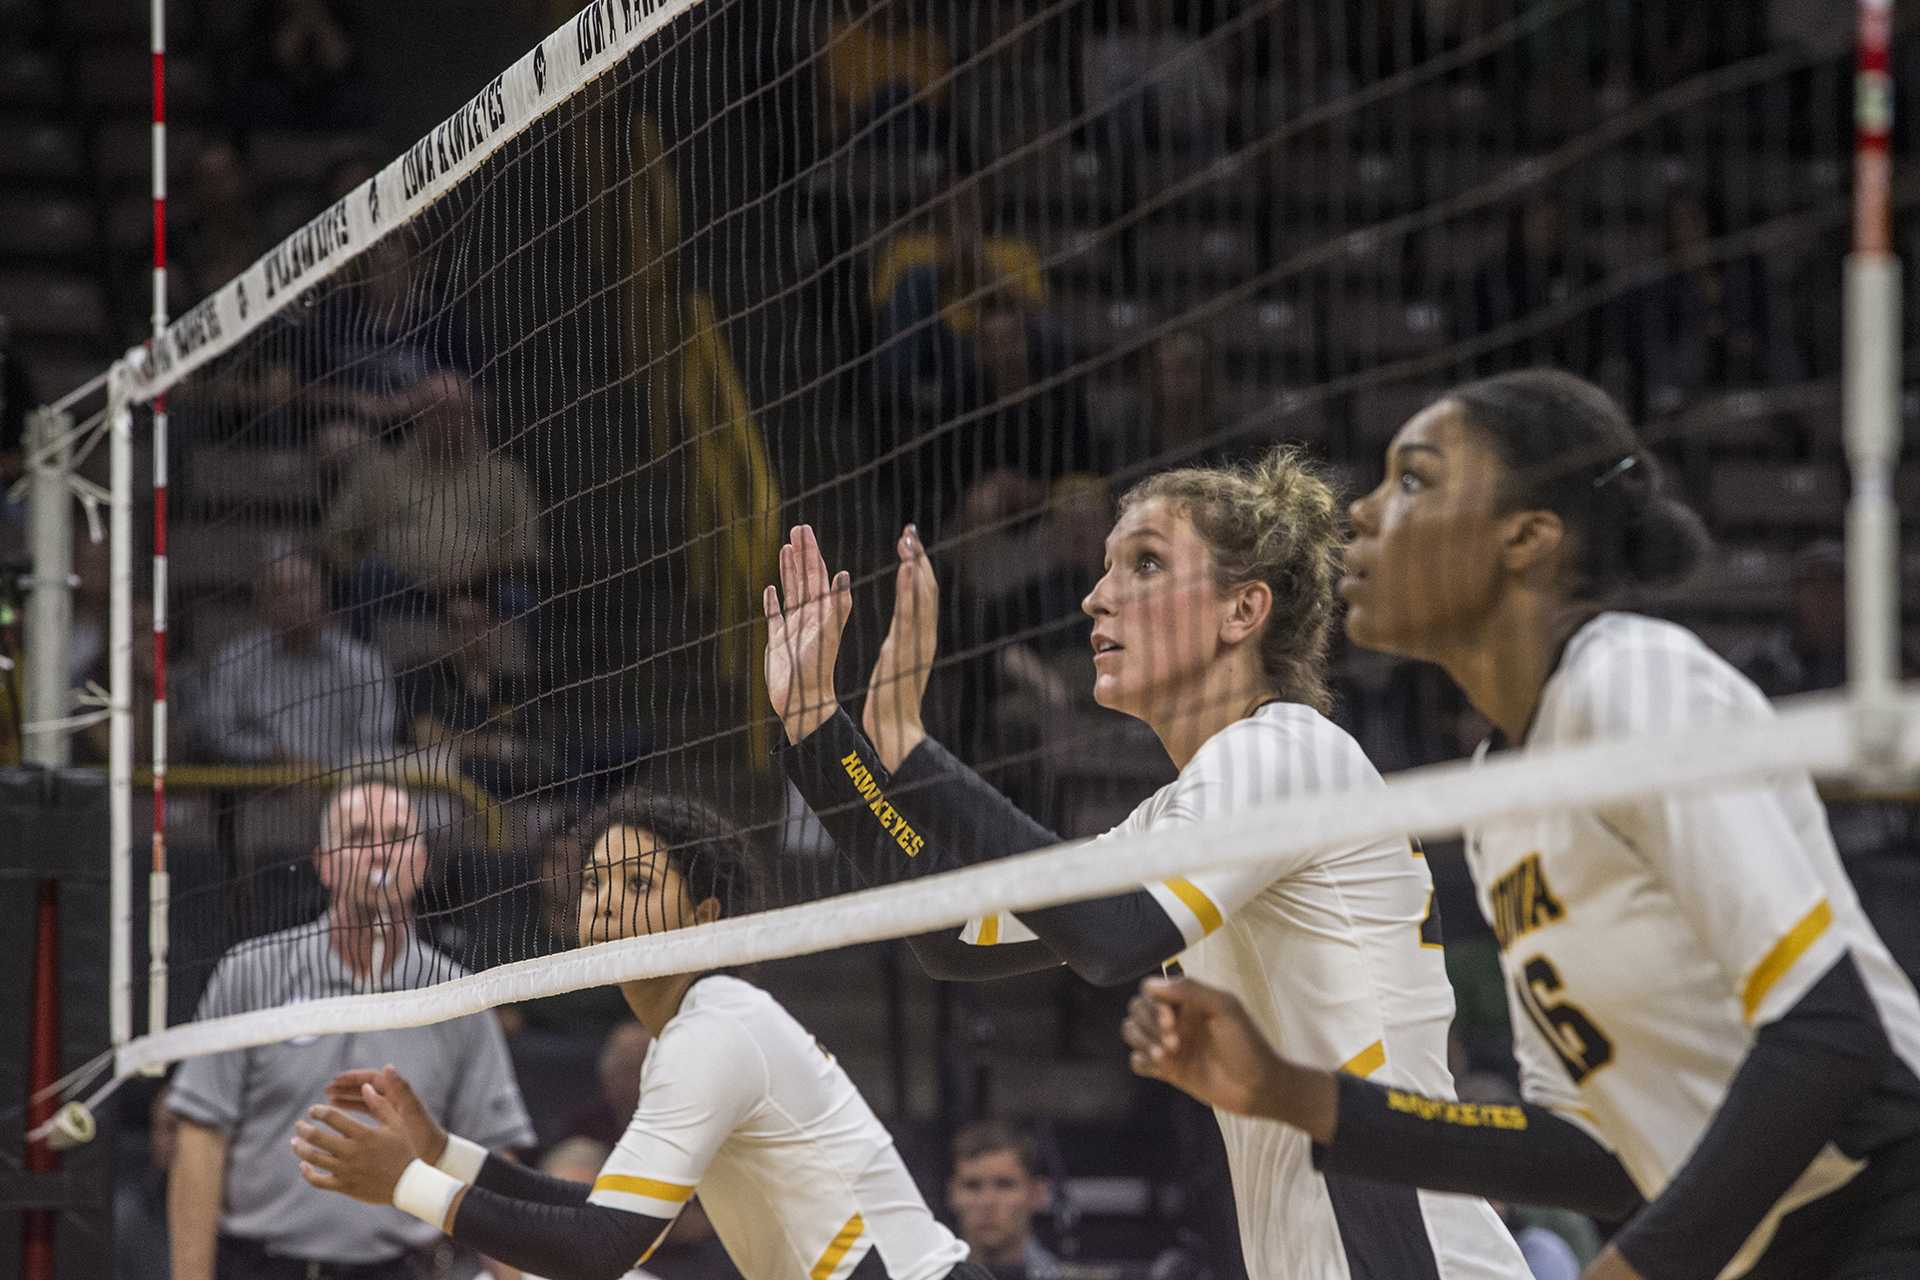 Iowa's Brie Orr, Jess Janota, and Taylor Louis prepare for the ball during a match against Michigan at Carver-Hawkeye Arena on Wednesday, Oct. 4, 2017. Iowa defeated Michigan 3 sets to 1. (Nick Rohlman/The Daily Iowan)